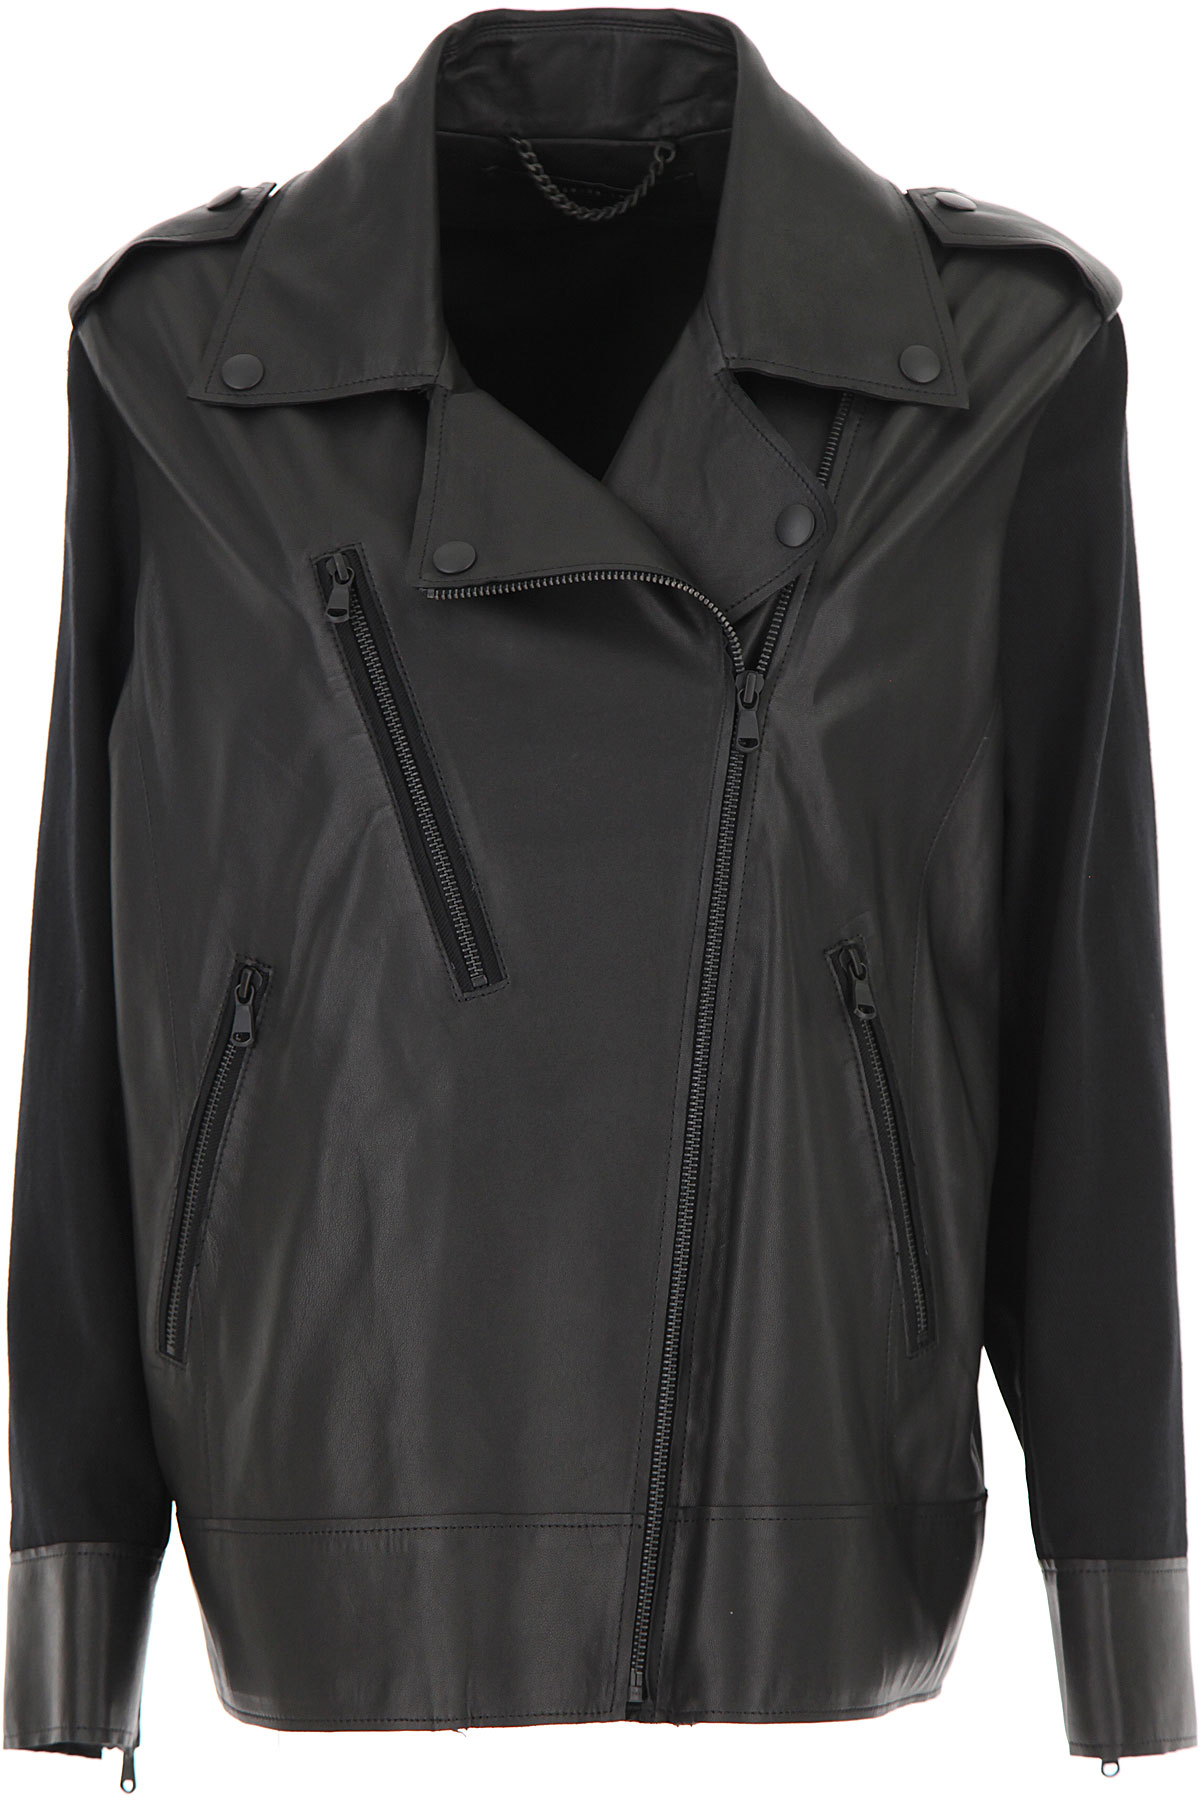 Federica Tosi Leather Jacket for Women On Sale, Black, Leather, 2019, 2 4 6